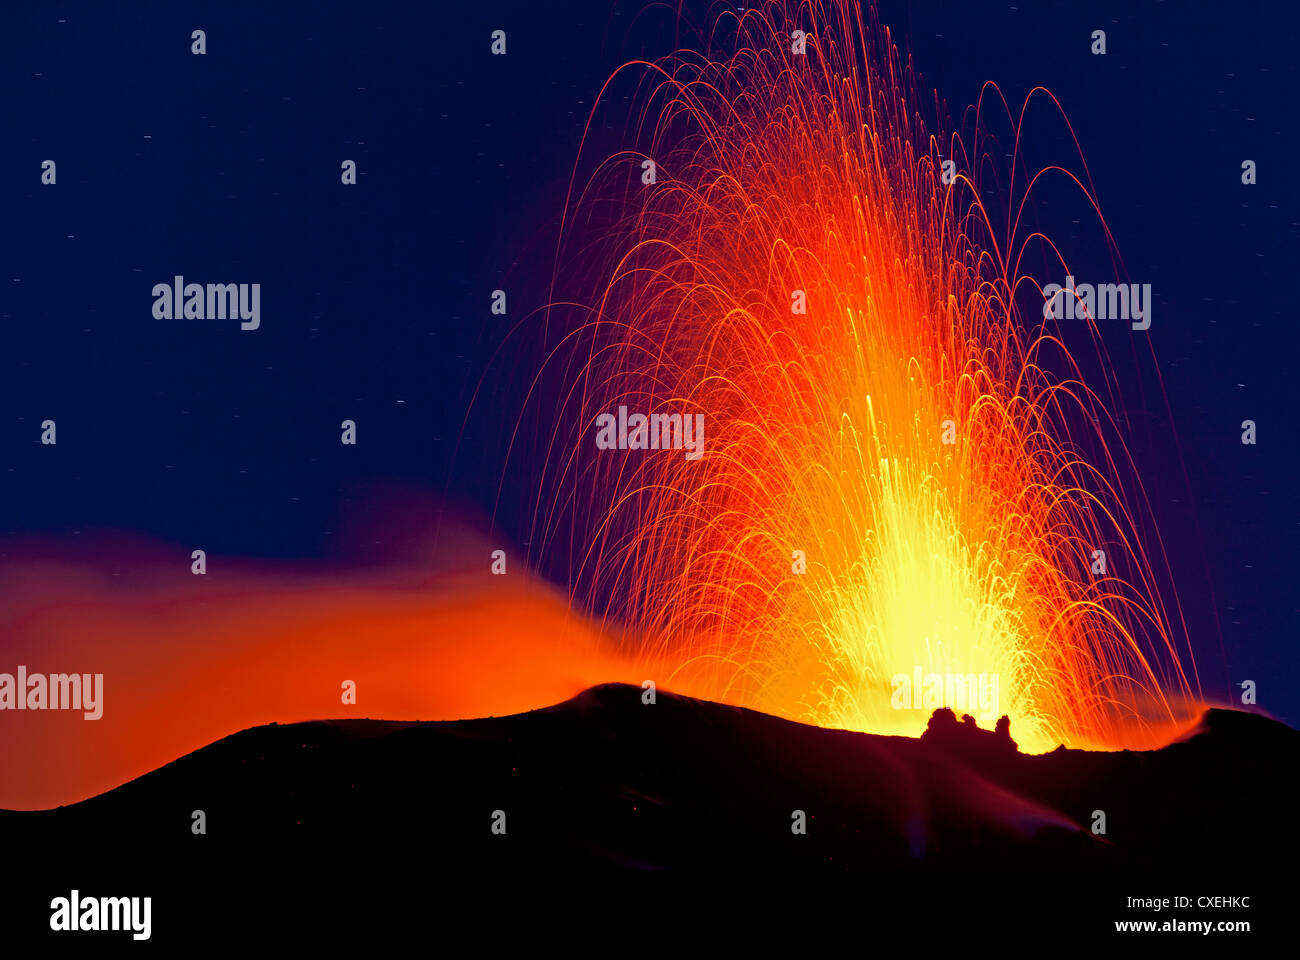 Eruptions of volcano Stromboli, Aeolian Islands, Italy - Stock Image